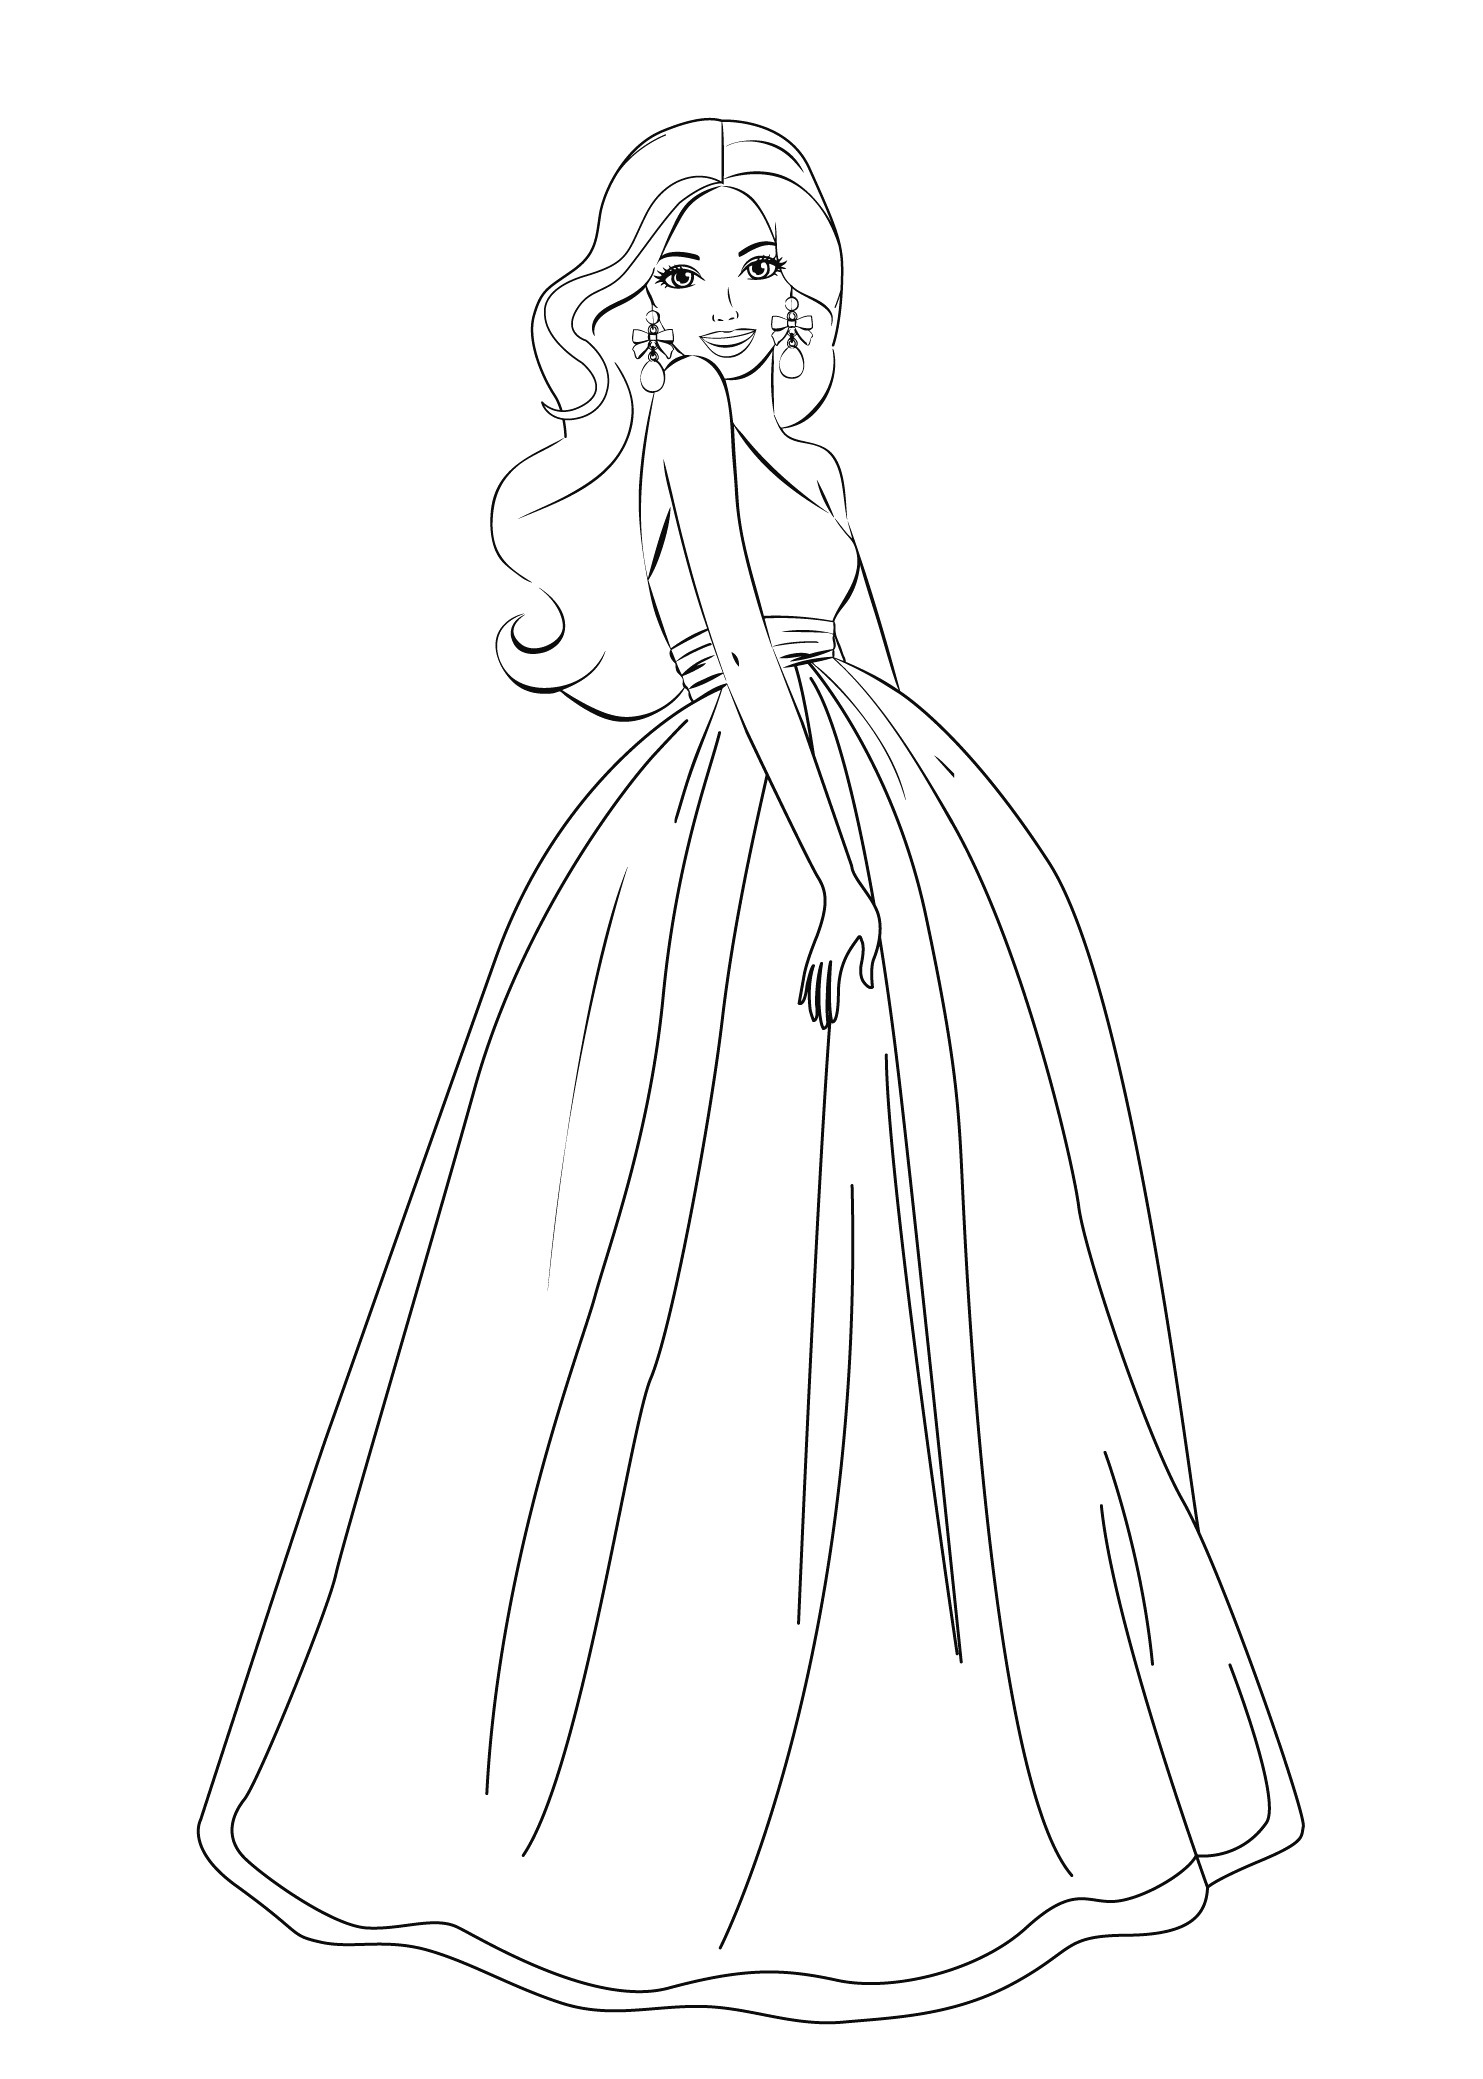 Printable Coloring Pages For Girls Free Coloring Pages For Girls Paysage Barbie Printable Coloring